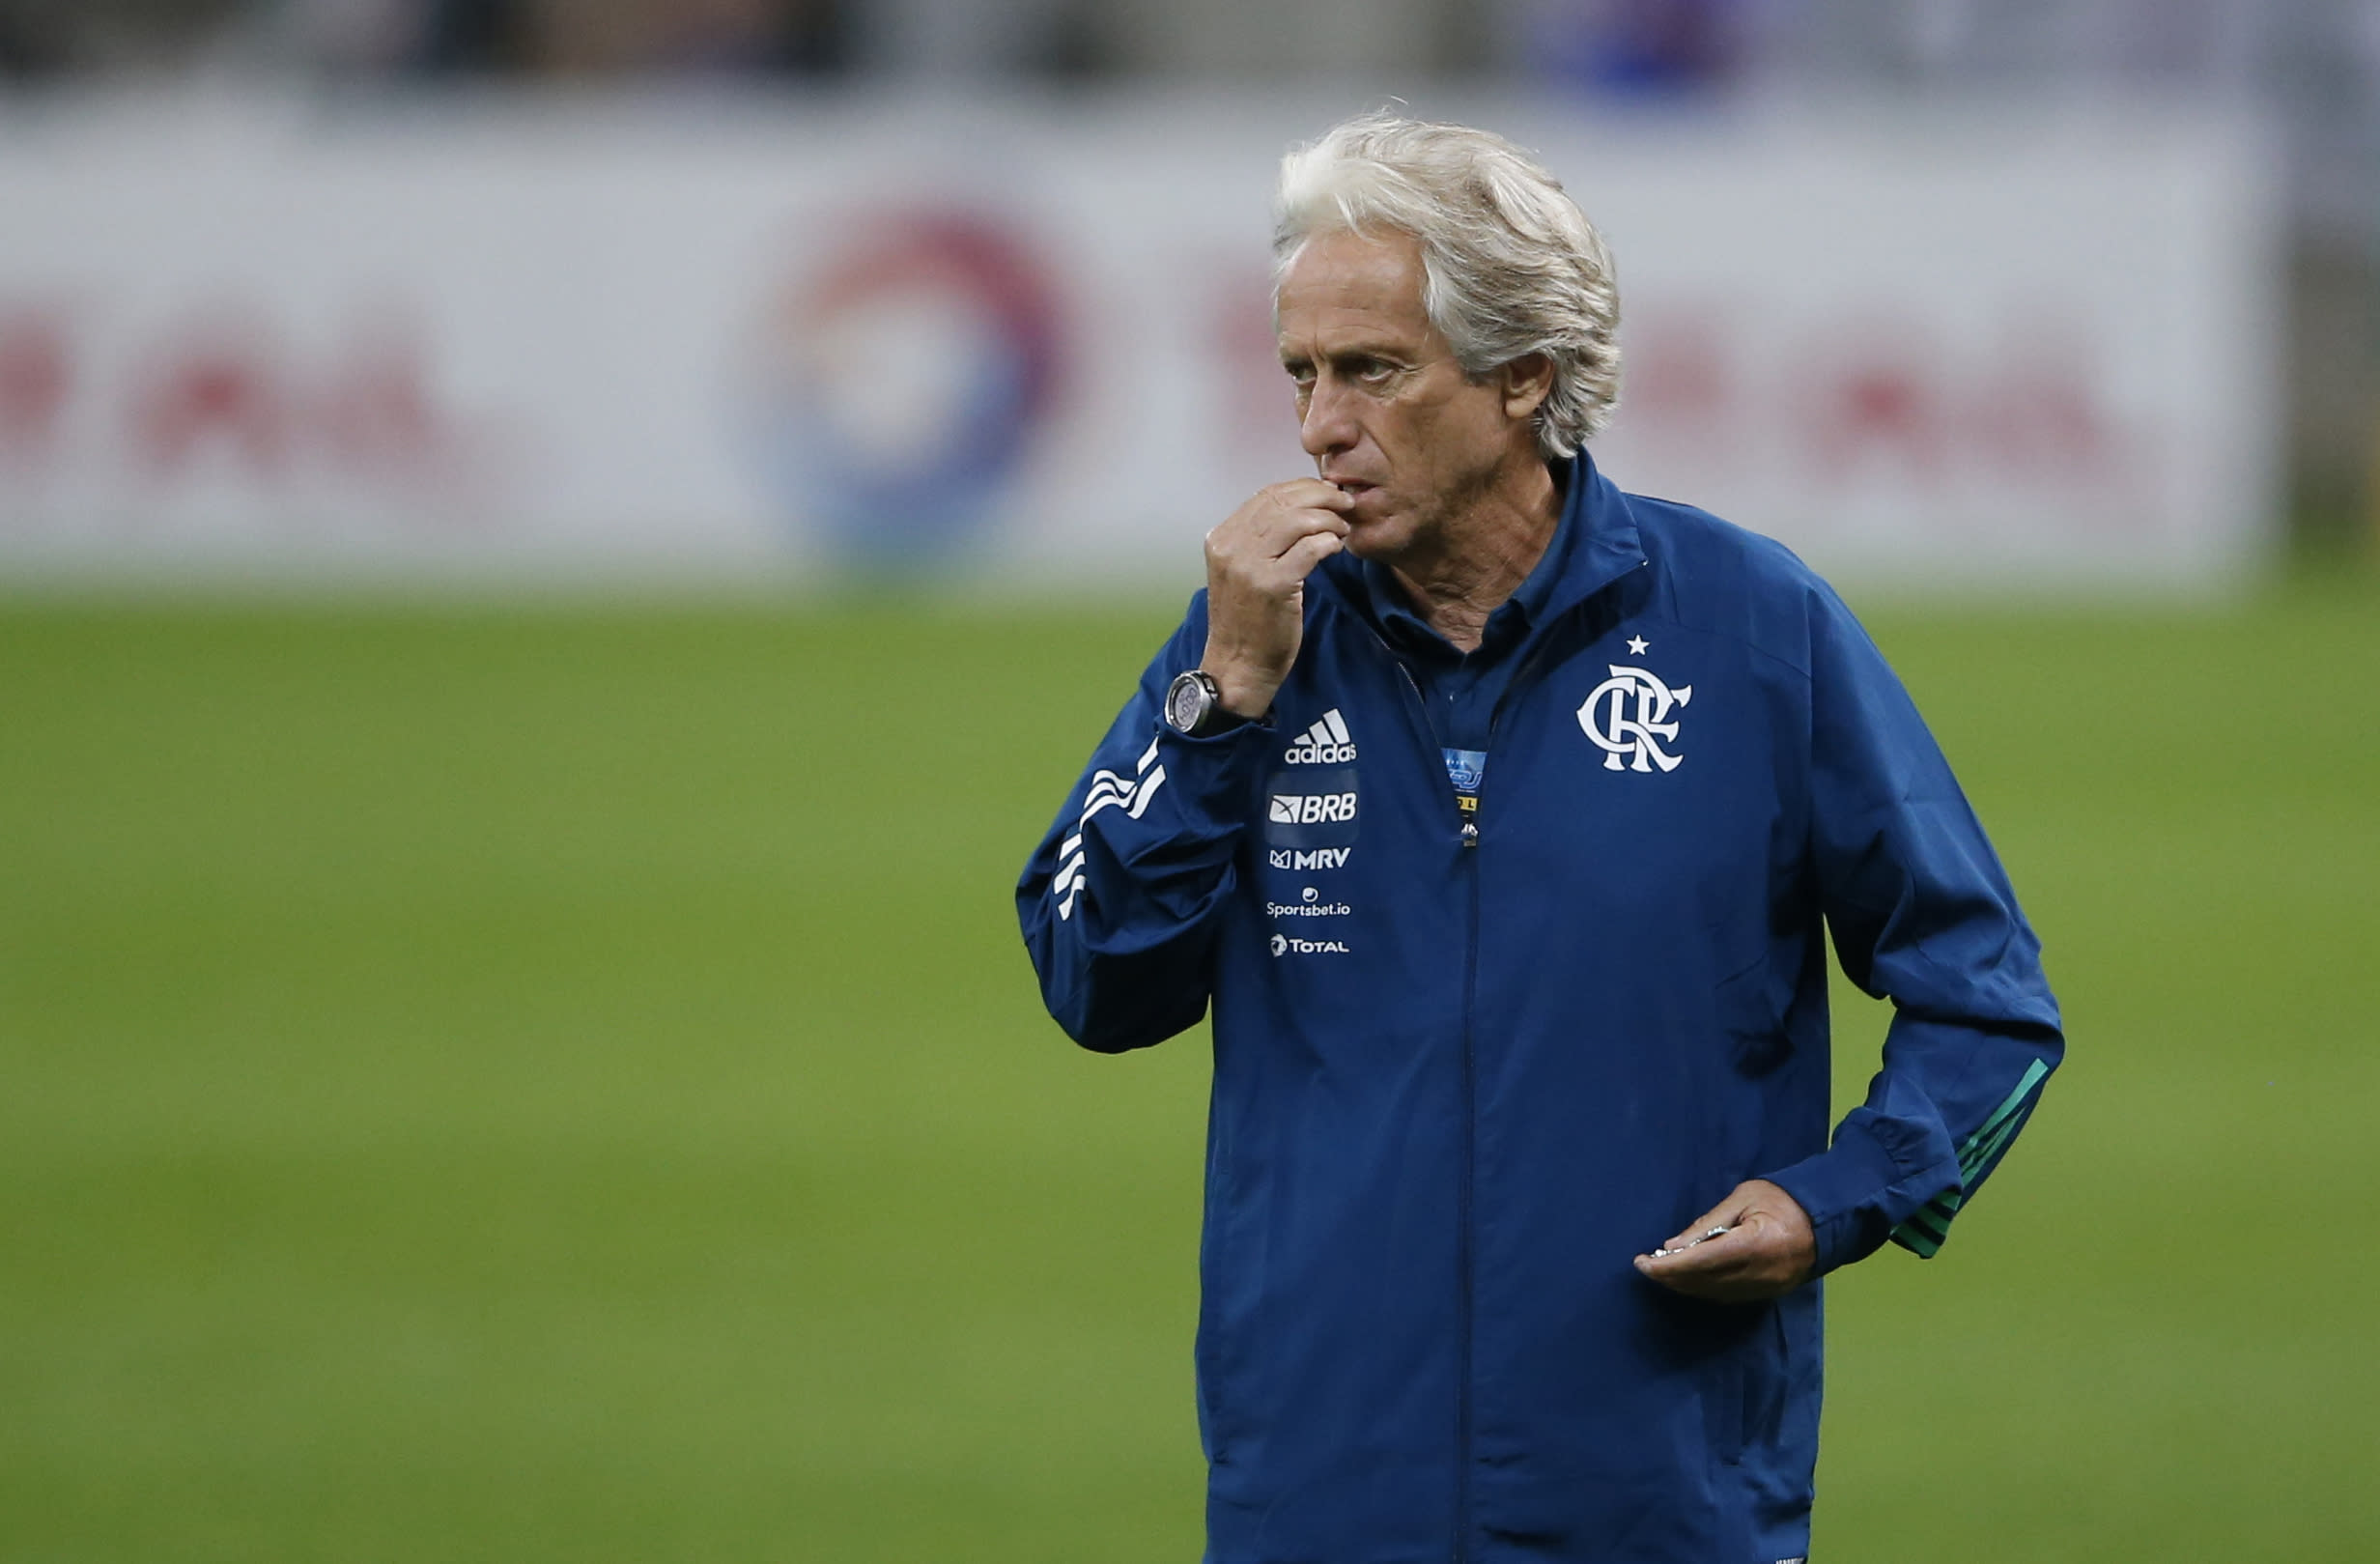 Flamengo's coach Jorge Jesus gestures before the Rio de Janeiro state championship final soccer match at the Maracana stadium, Rio de Janeiro, Brazil, Wednesday, July 15, 2020. The match is being played without spectators to curb the spread of COVID-19. (AP Photo/Leo Correa)